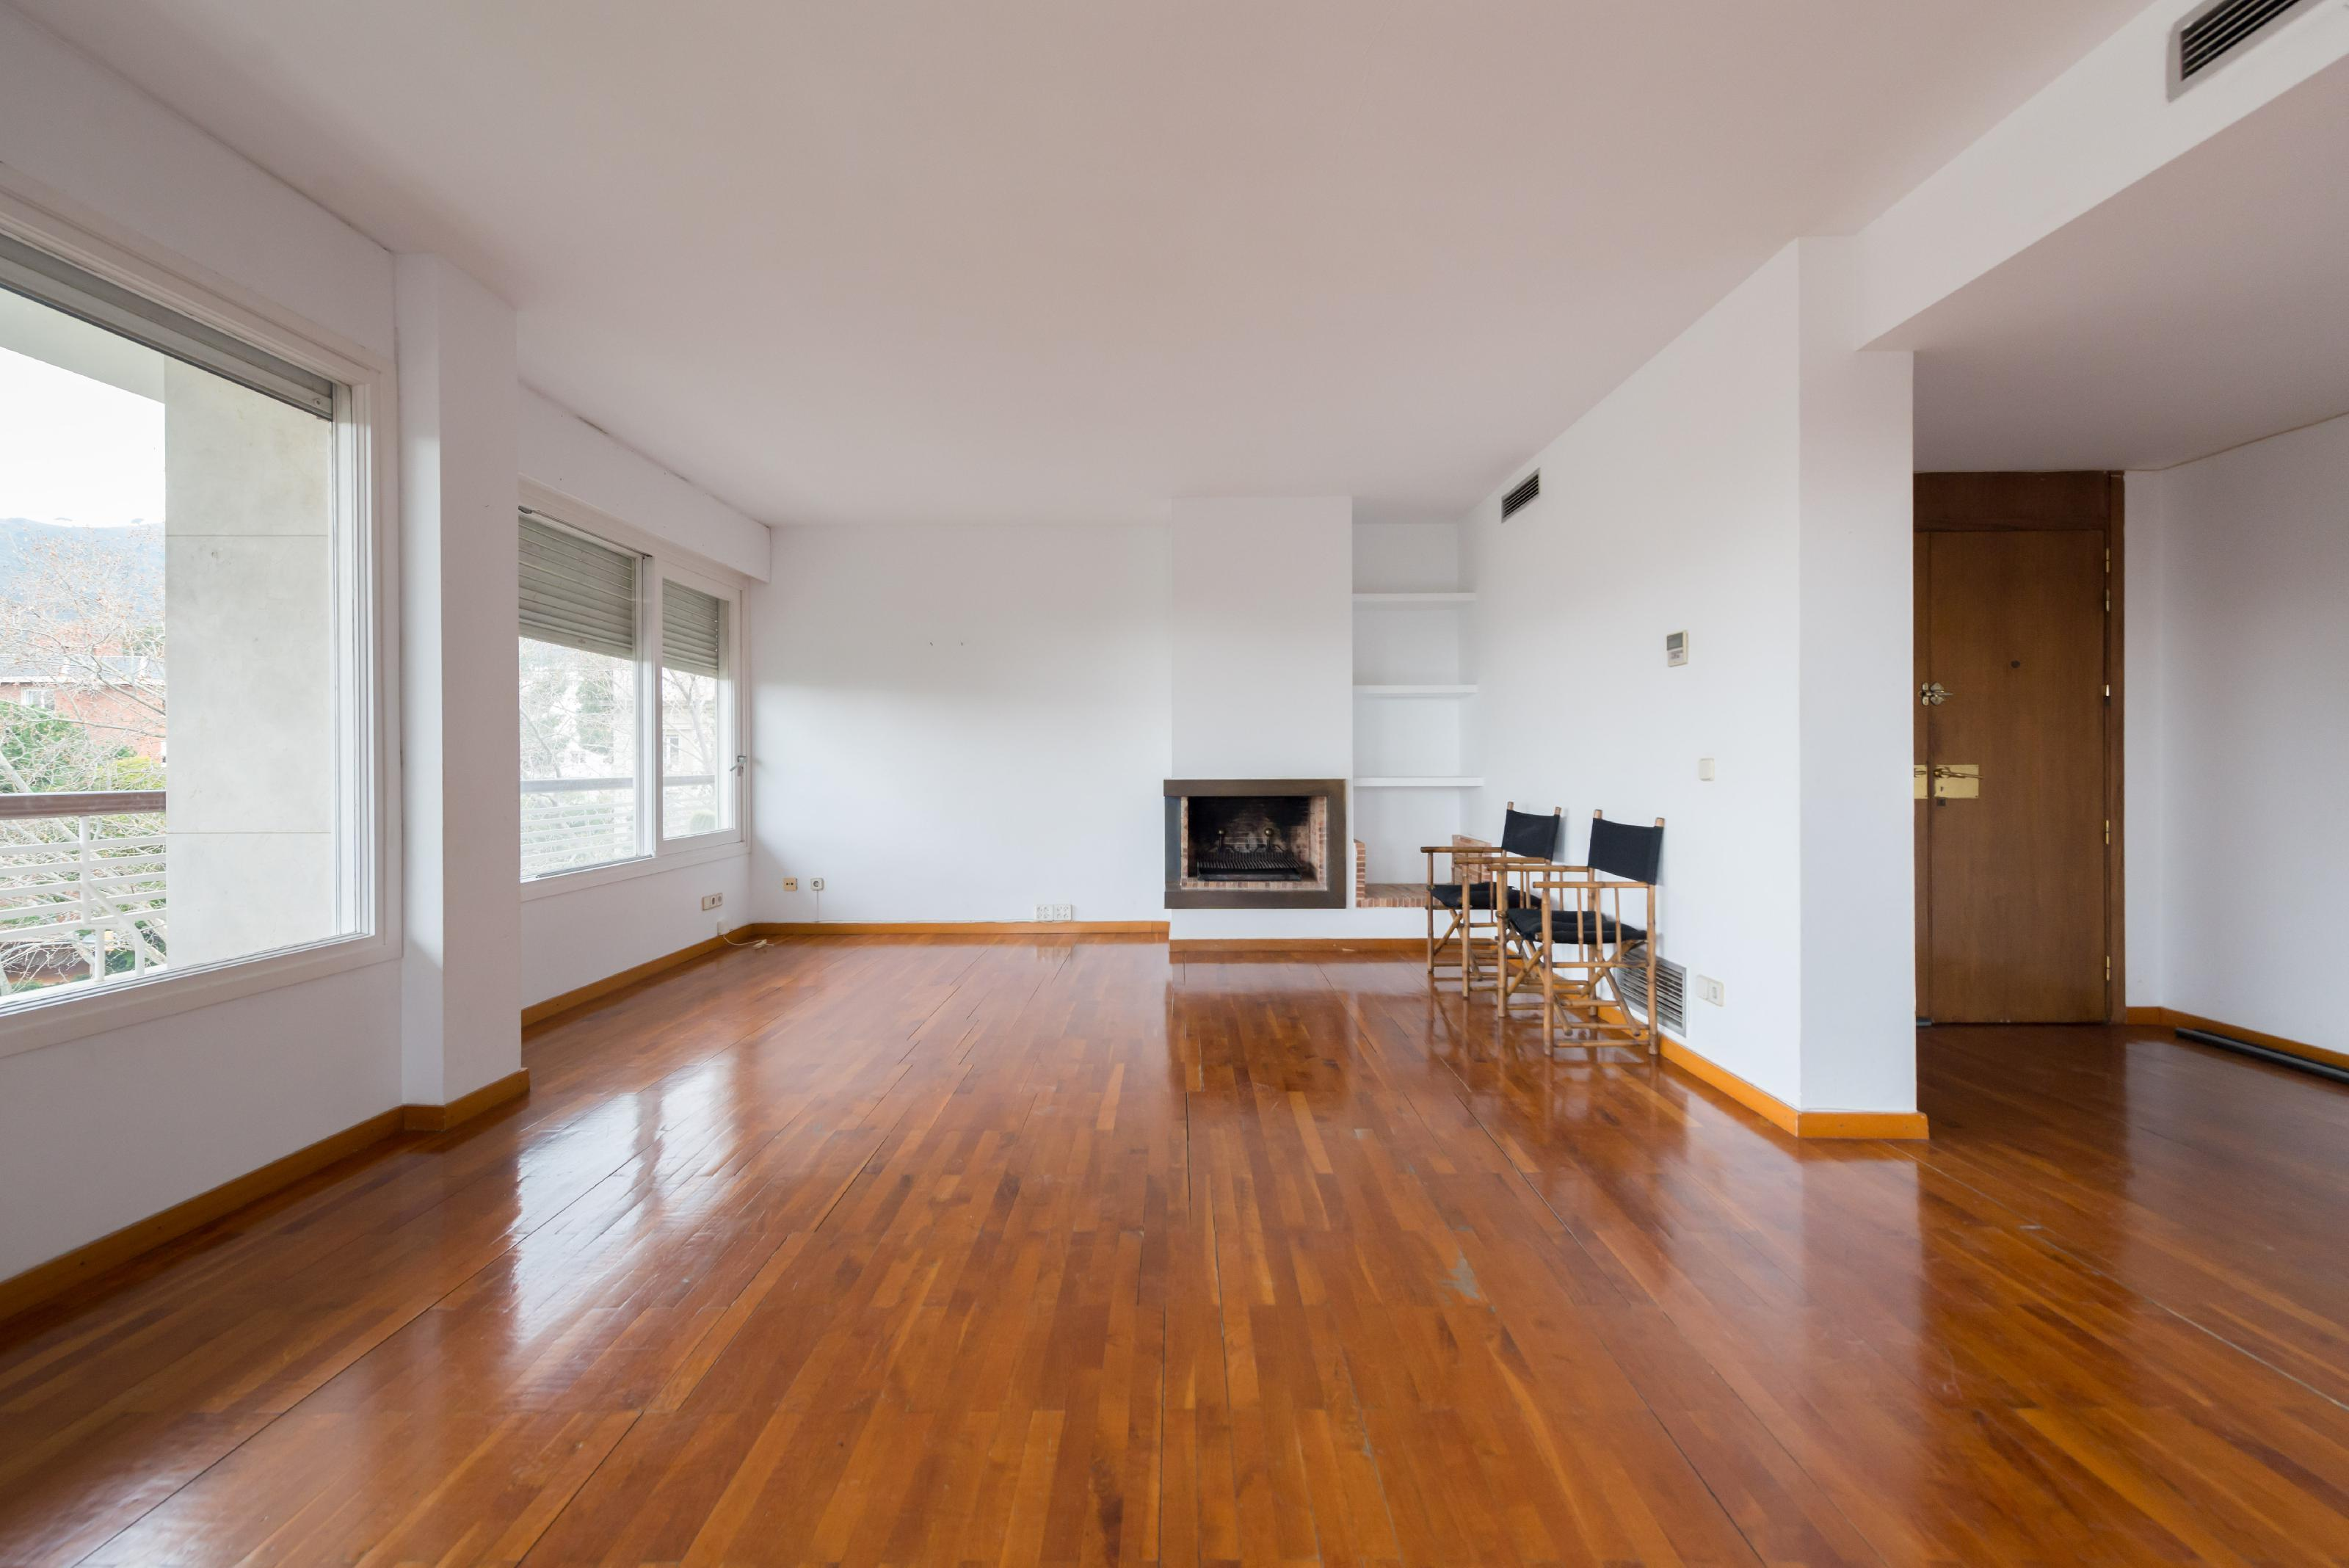 245495 Penthouse for sale in Les Corts, Pedralbes 7